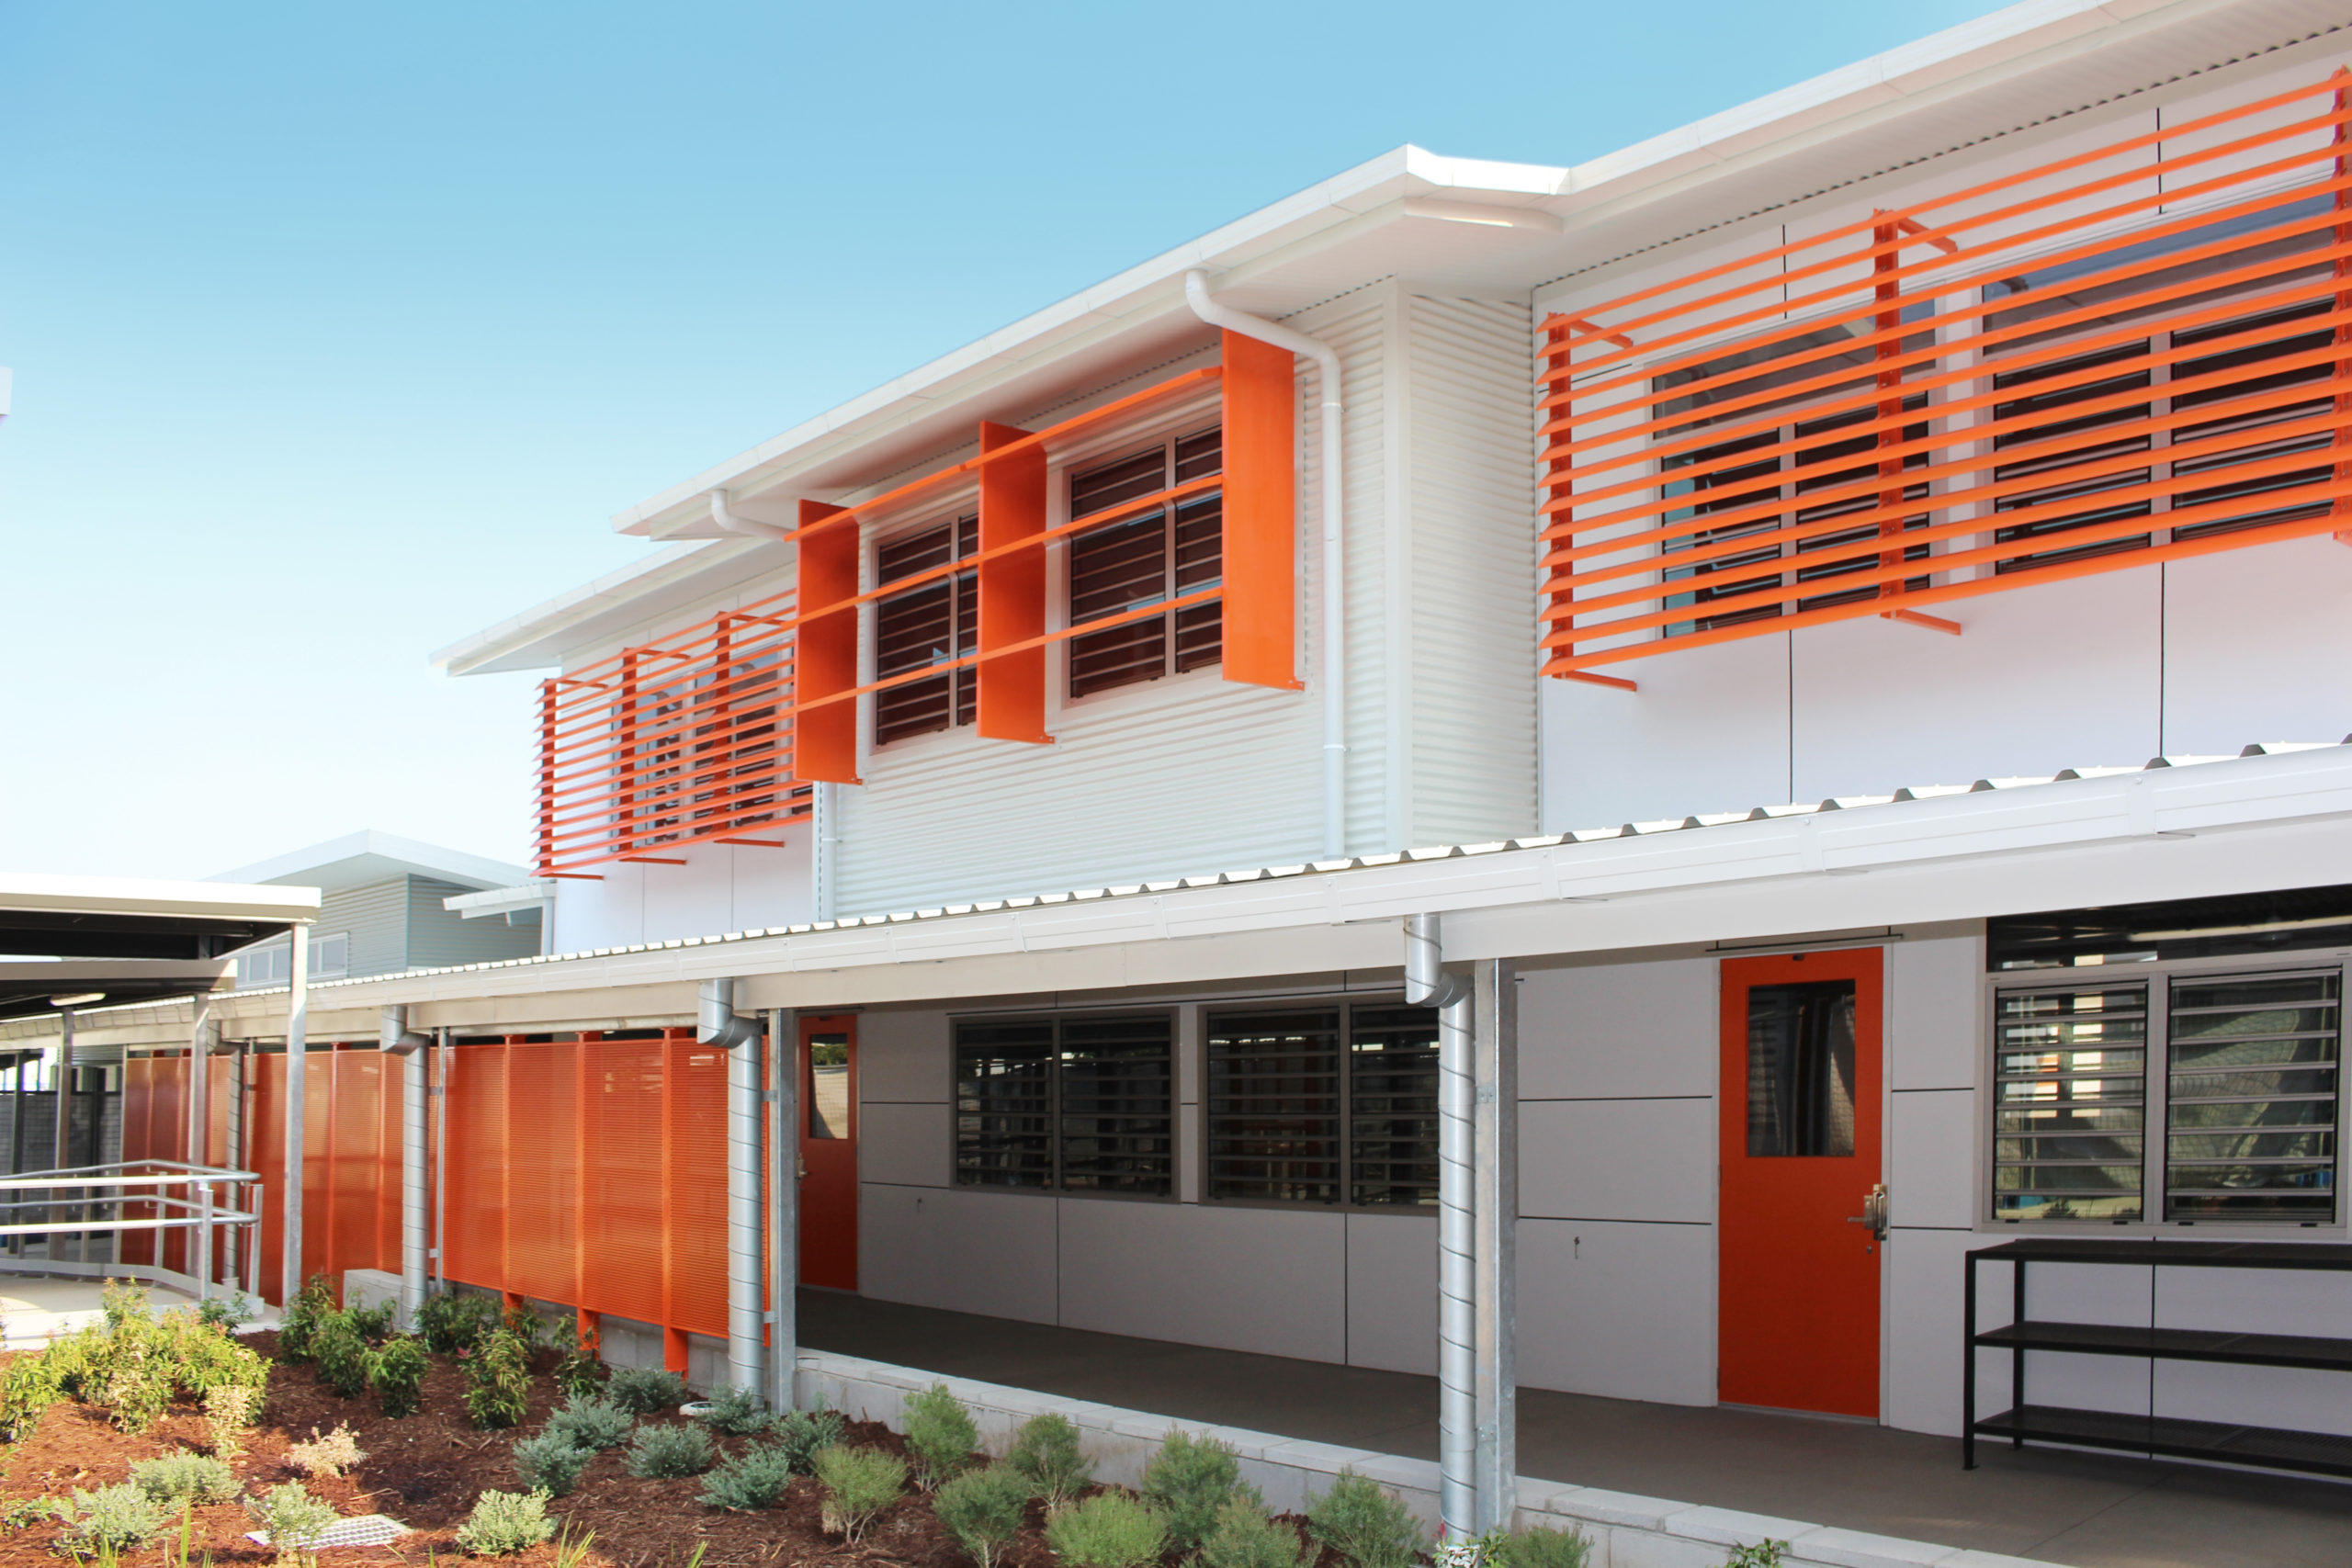 Griffin State School delivered by Wiley Education